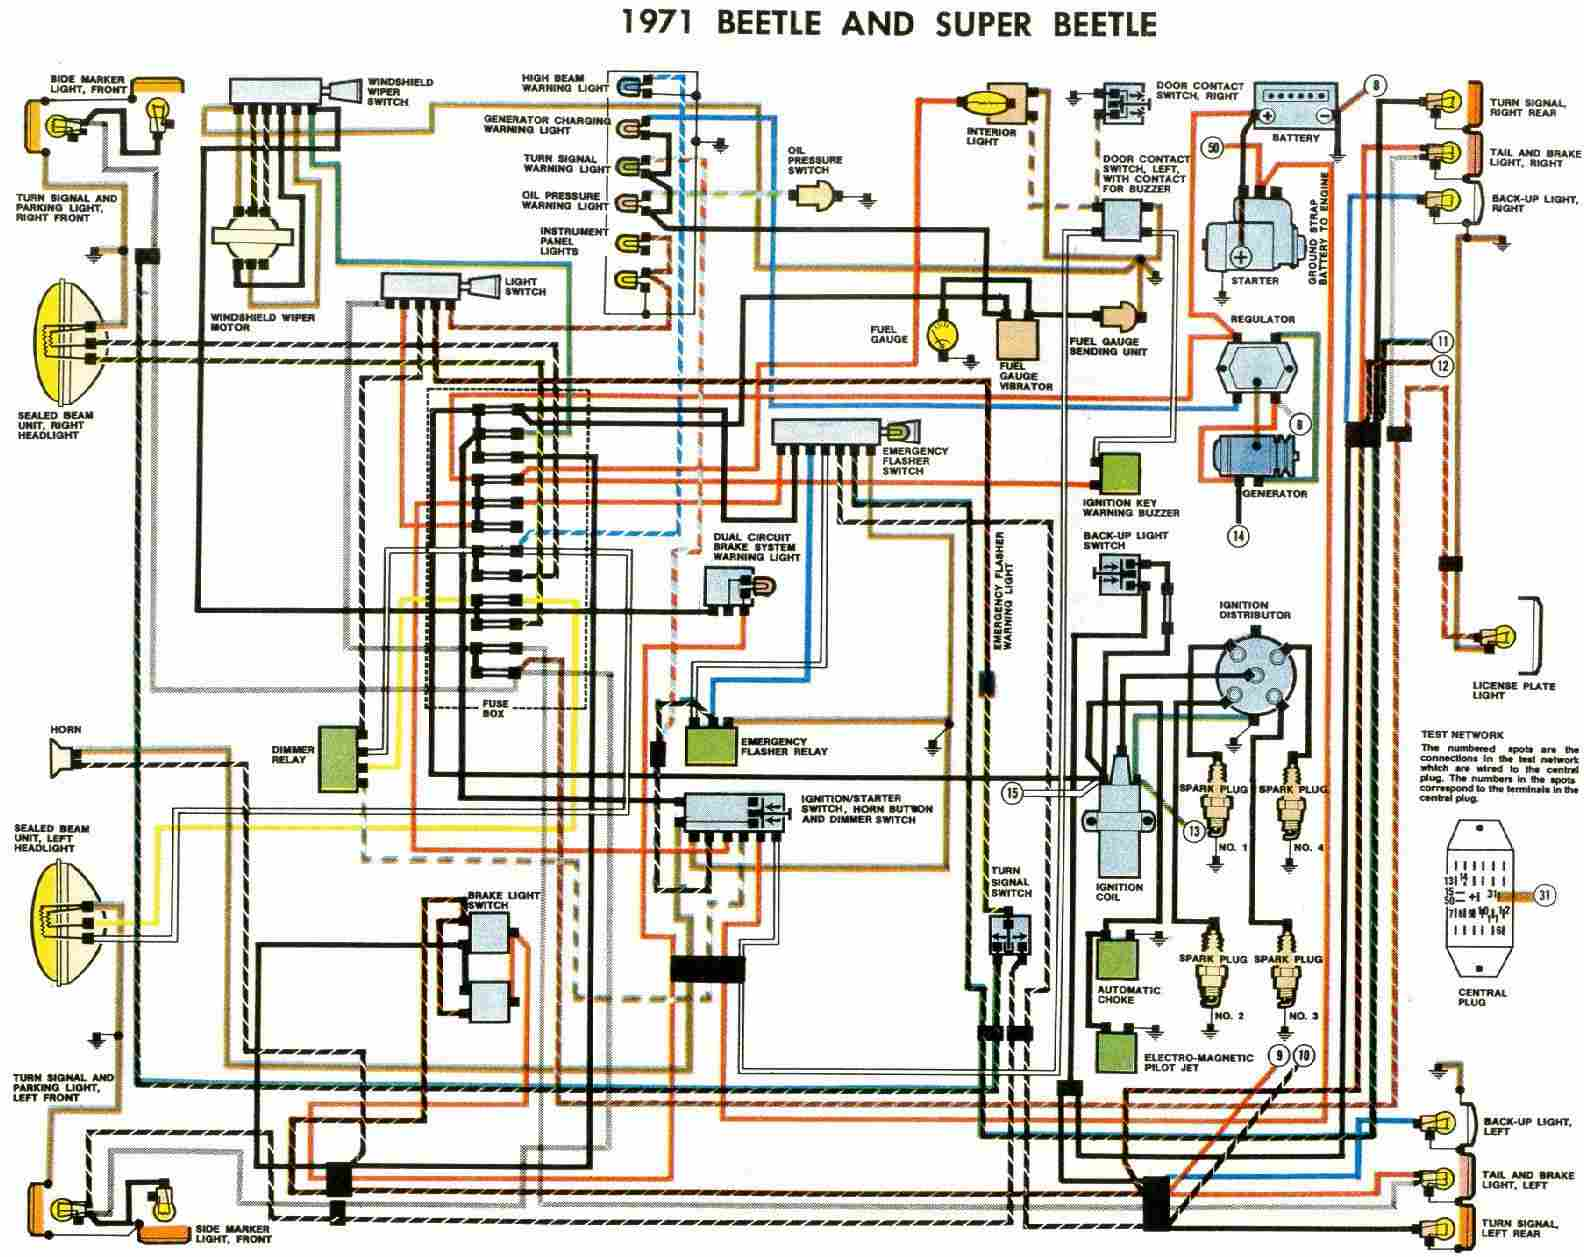 vw beetle and super beetle 1971 electrical wiring diagram all 1969 Mustang Fuse Box Diagram  1971 Mustang Fuse Panel Ford FICM Wiring for Electrical System Ford Alternator Wiring Diagram